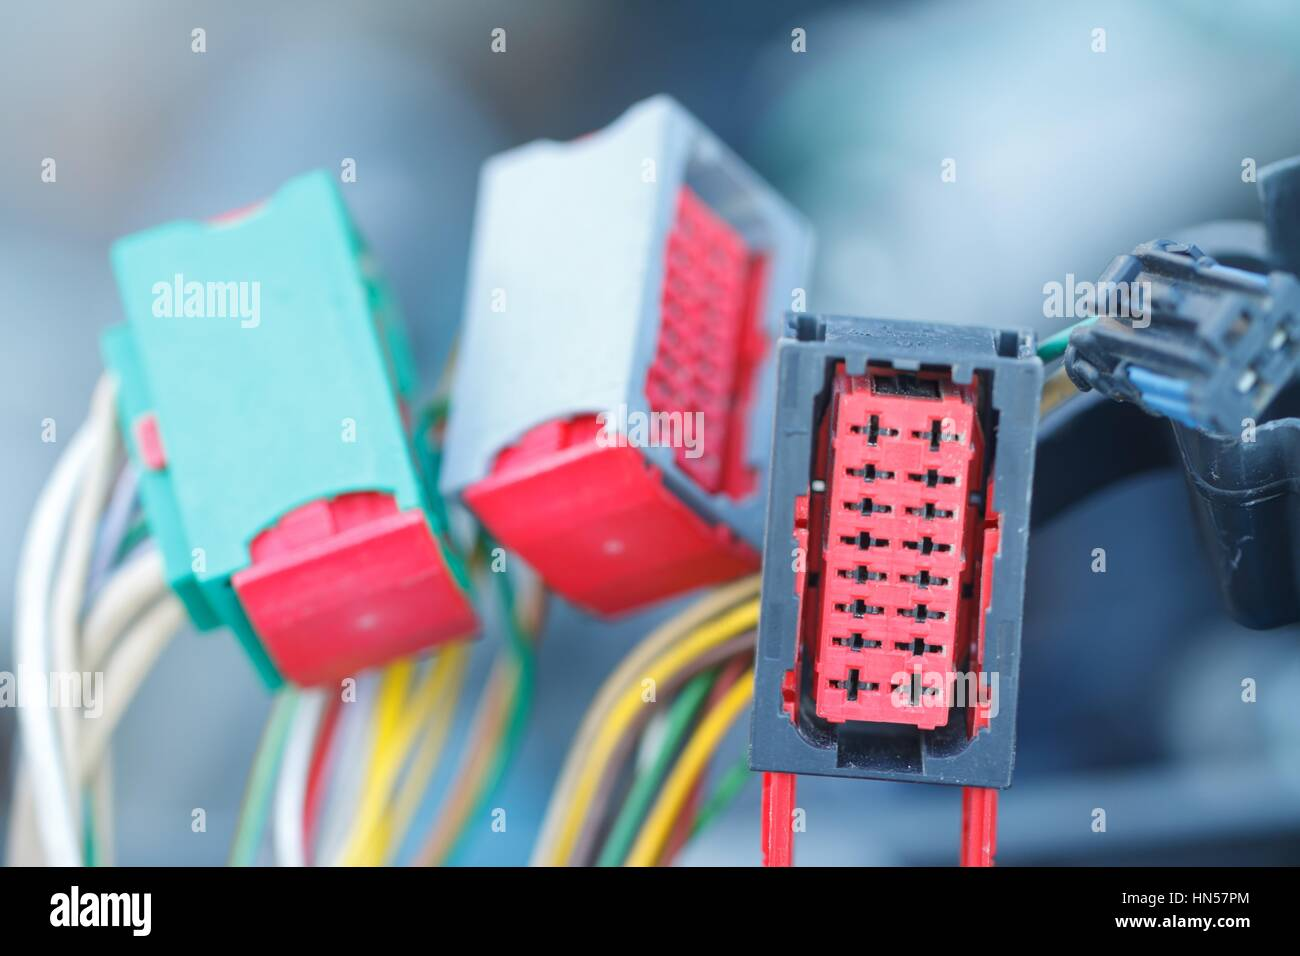 Car Wires Stock Photos & Car Wires Stock Images - Alamy